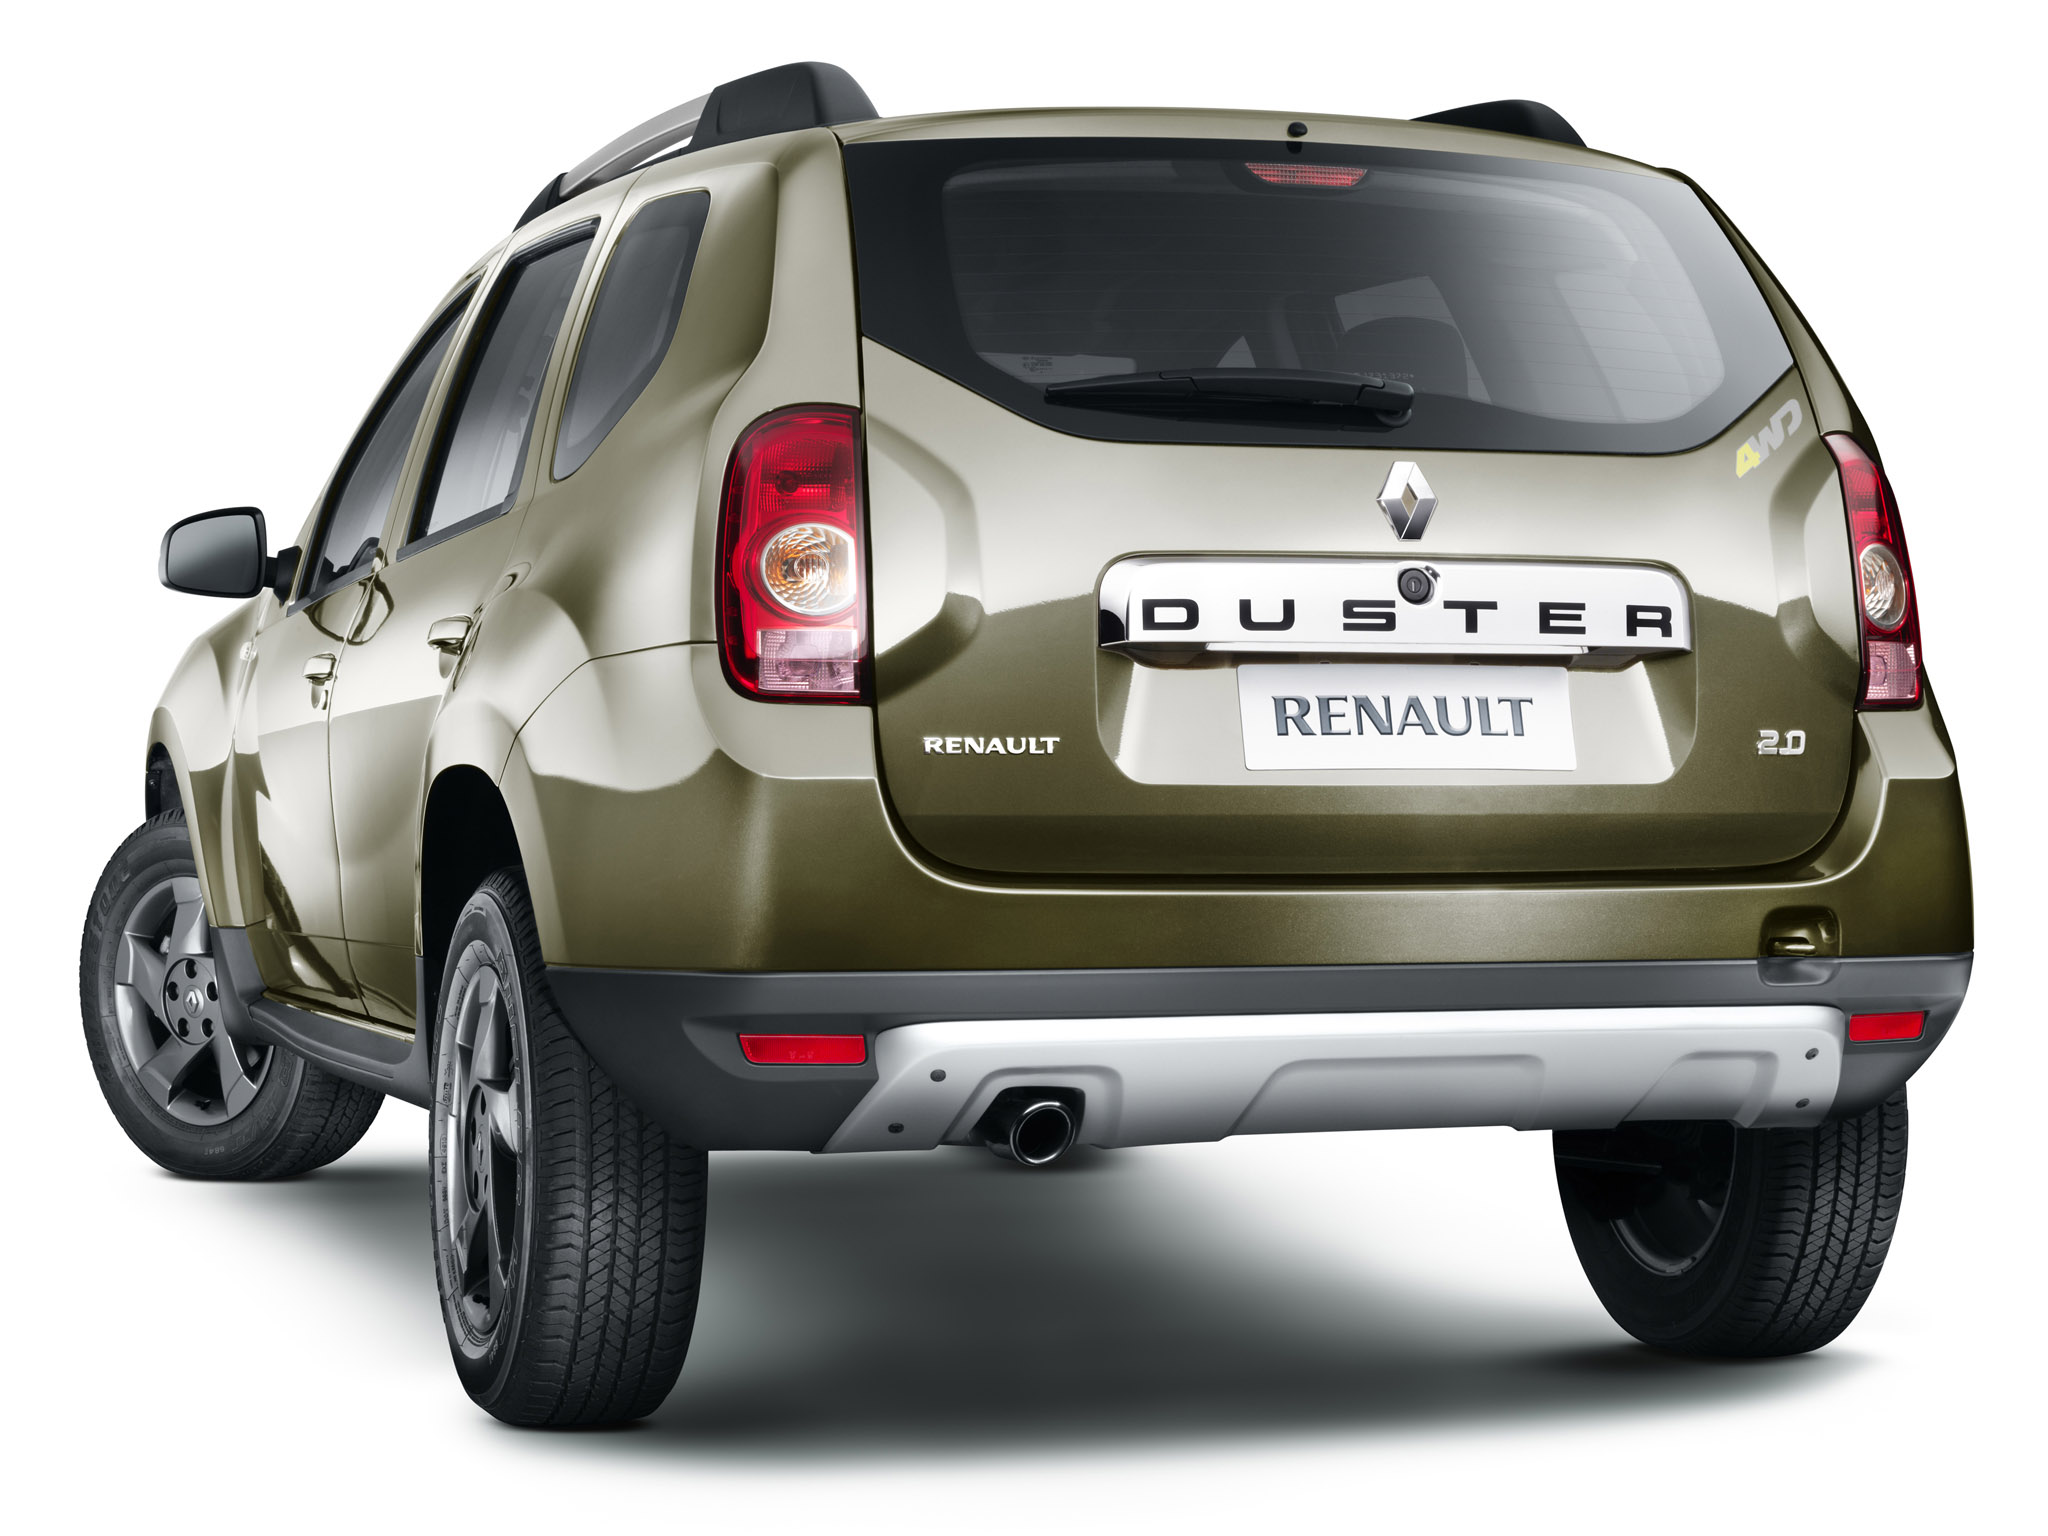 Renault DUSTER  Renault India  Passion for Life